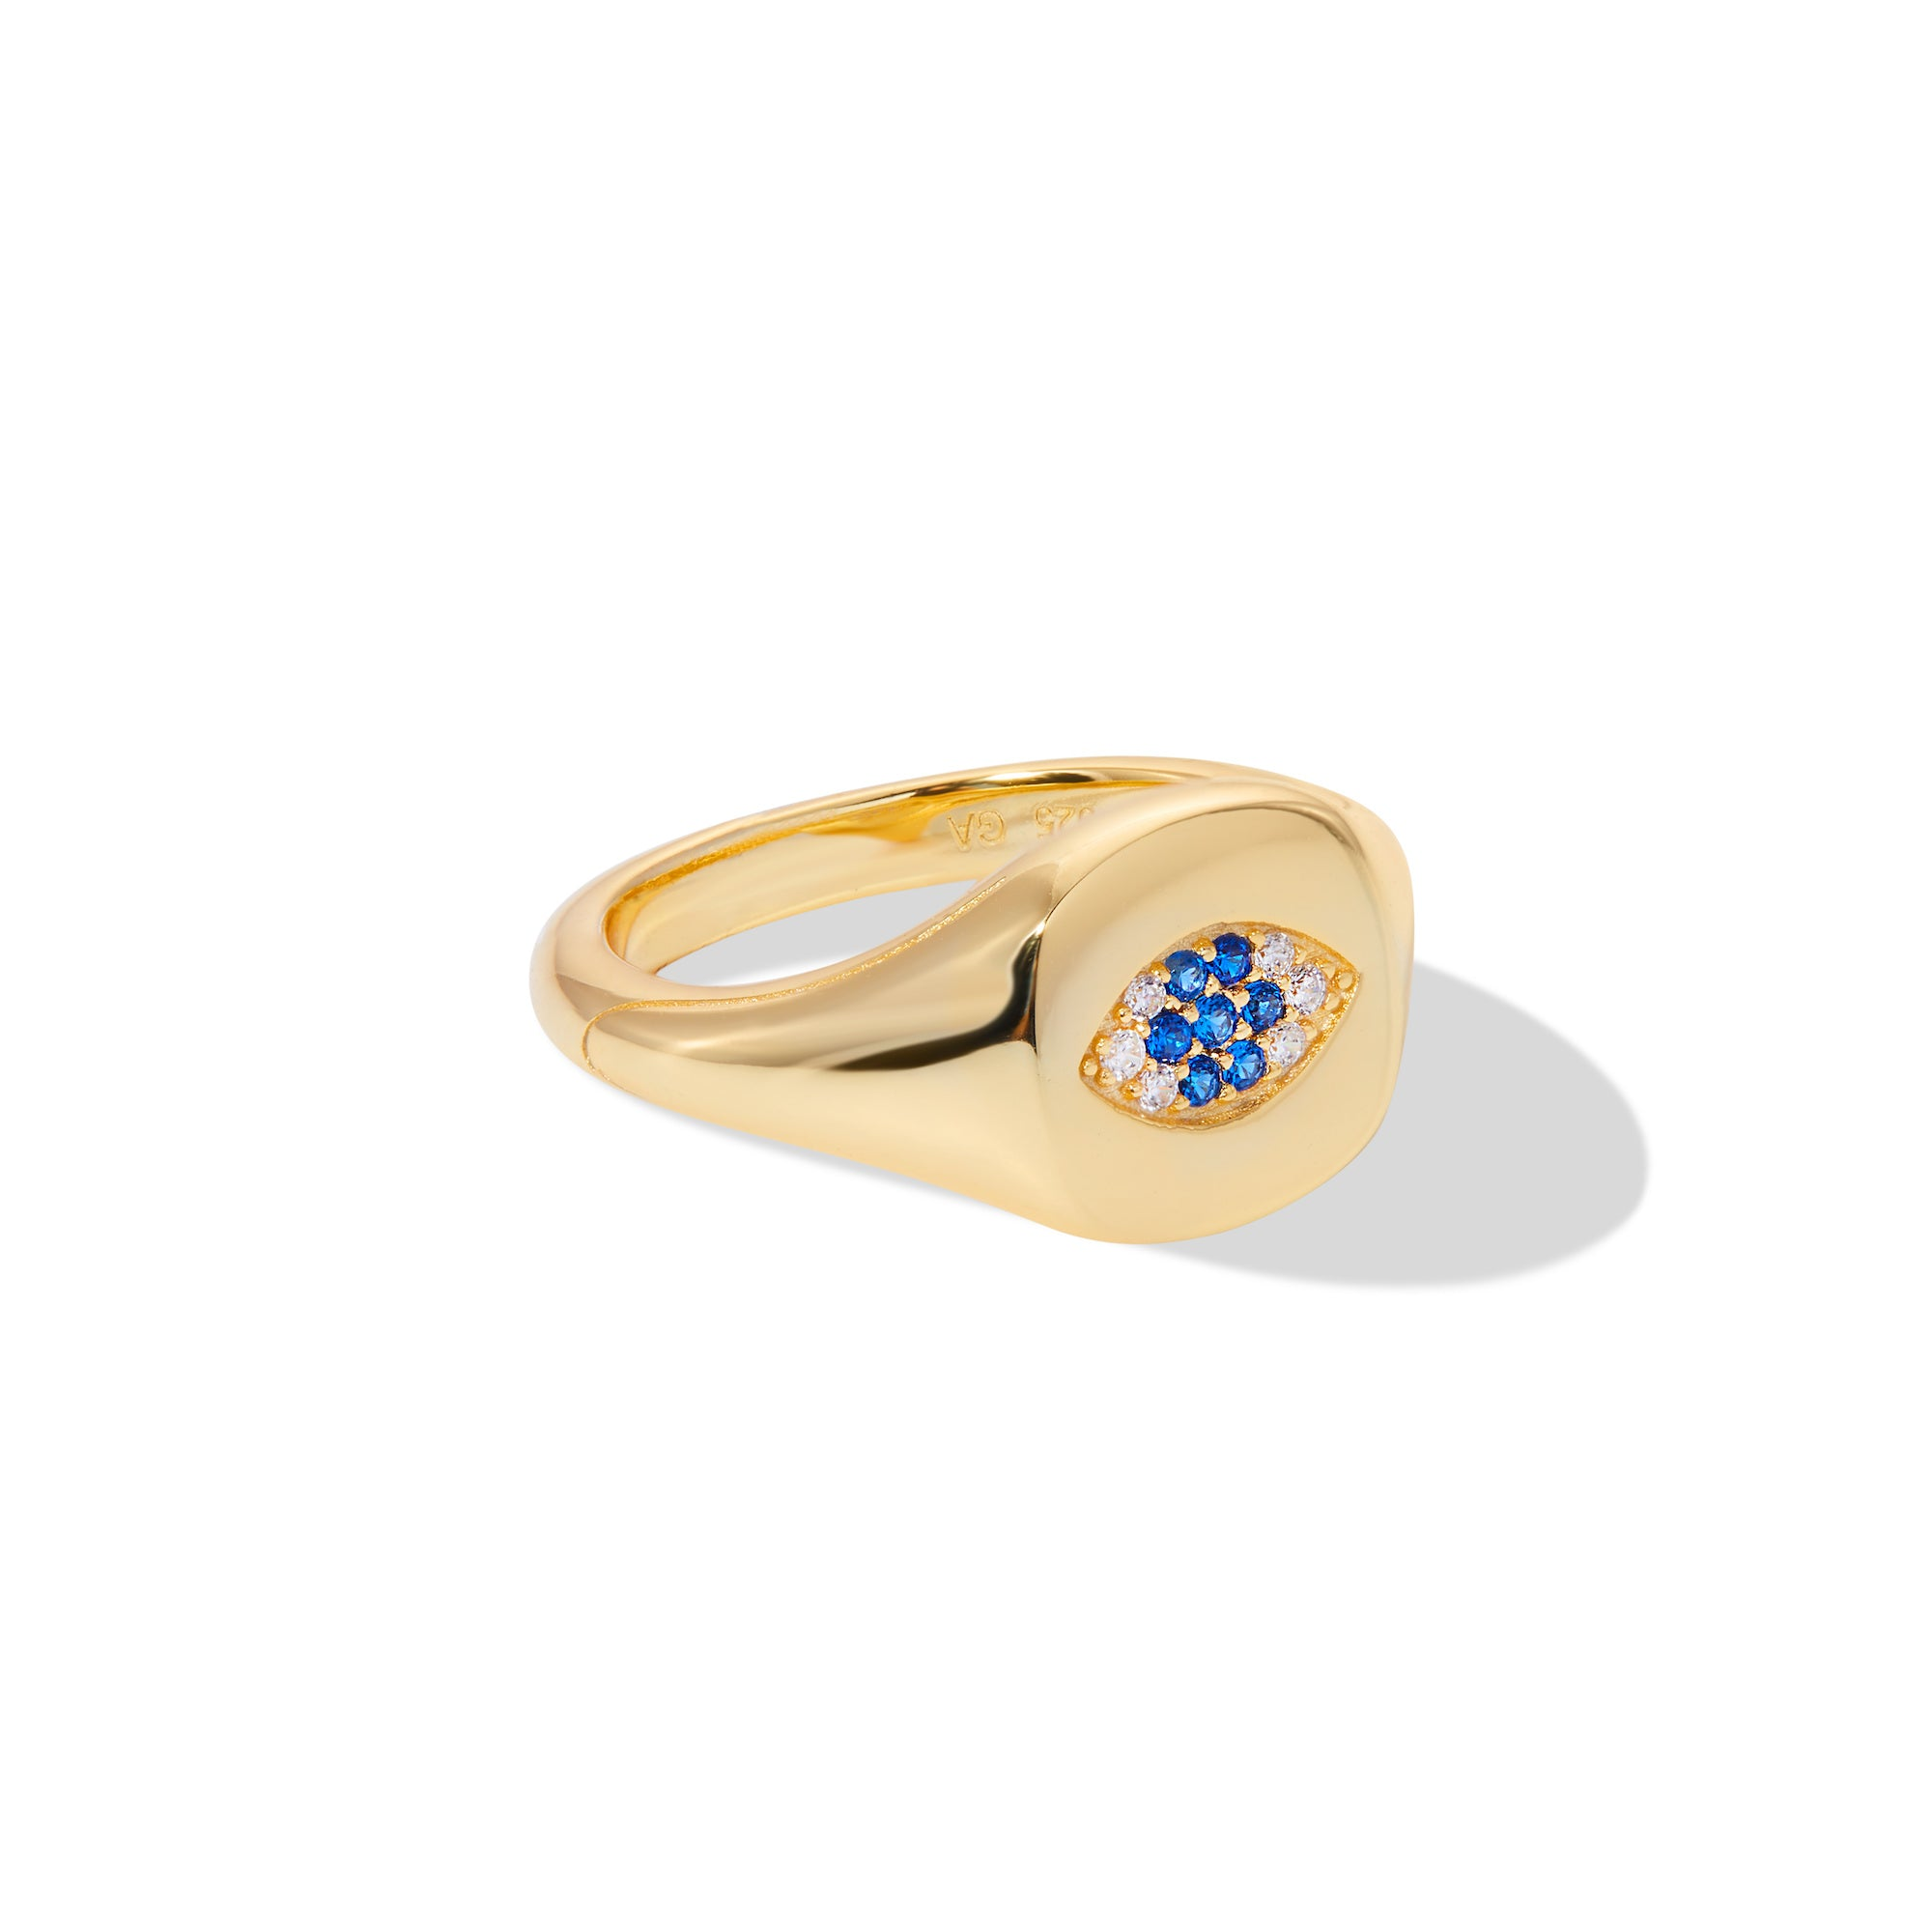 Image of Evil eye gold vermeil signet ring with blue & white cz